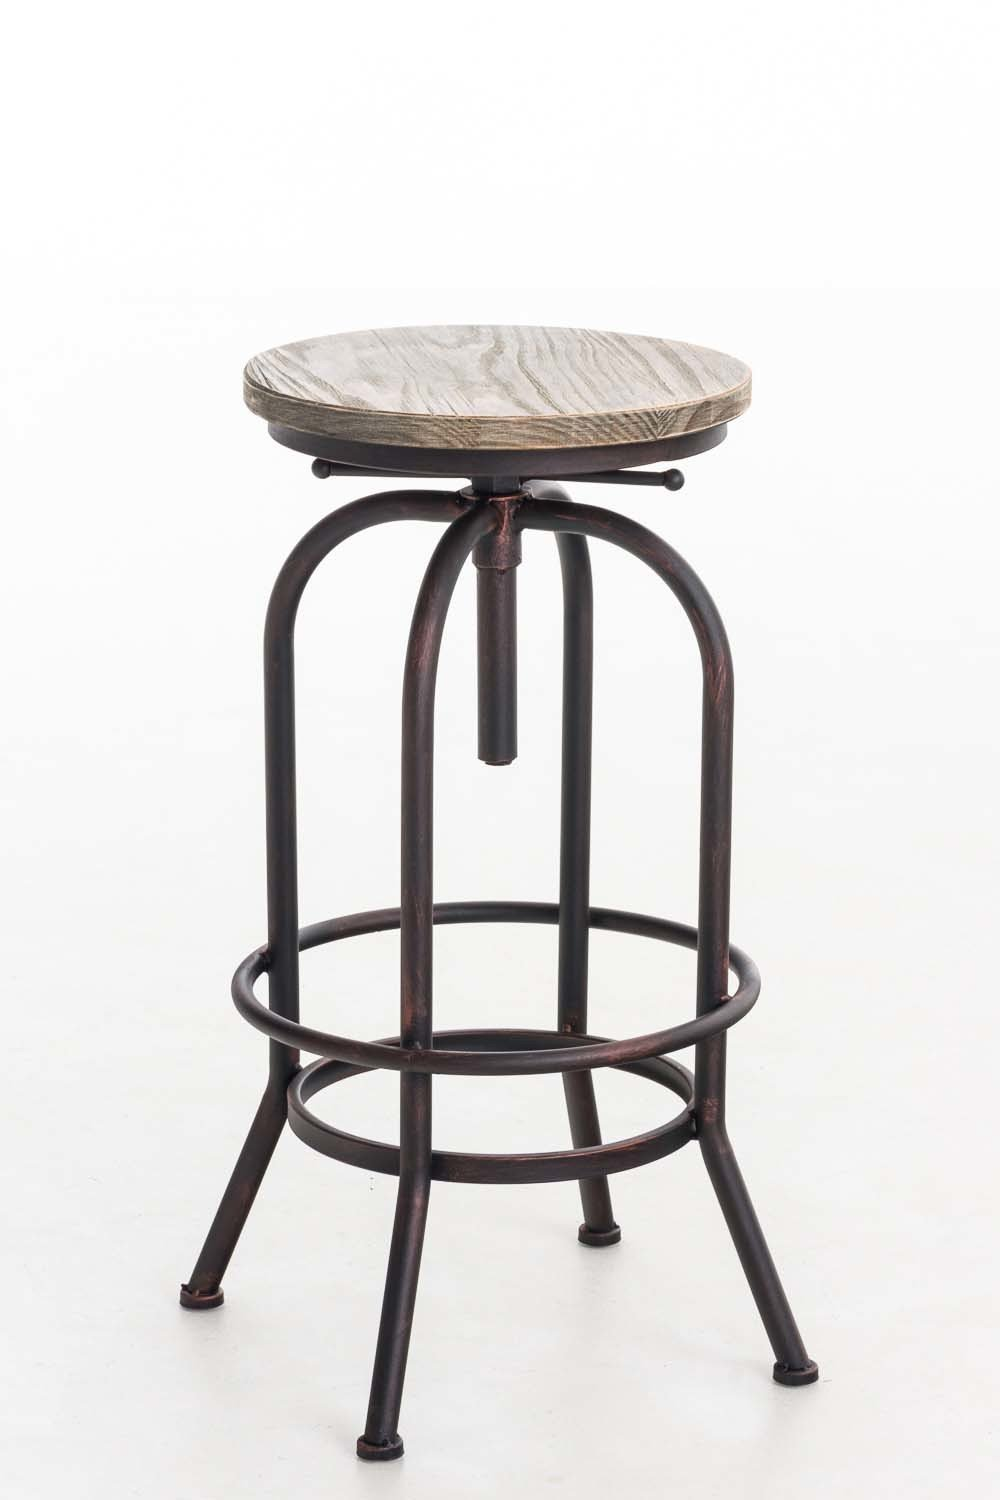 Bar stool in retro industrial look  Metal stool with solid wooden seat  Adjustable height chair  with Footrest  Bronze